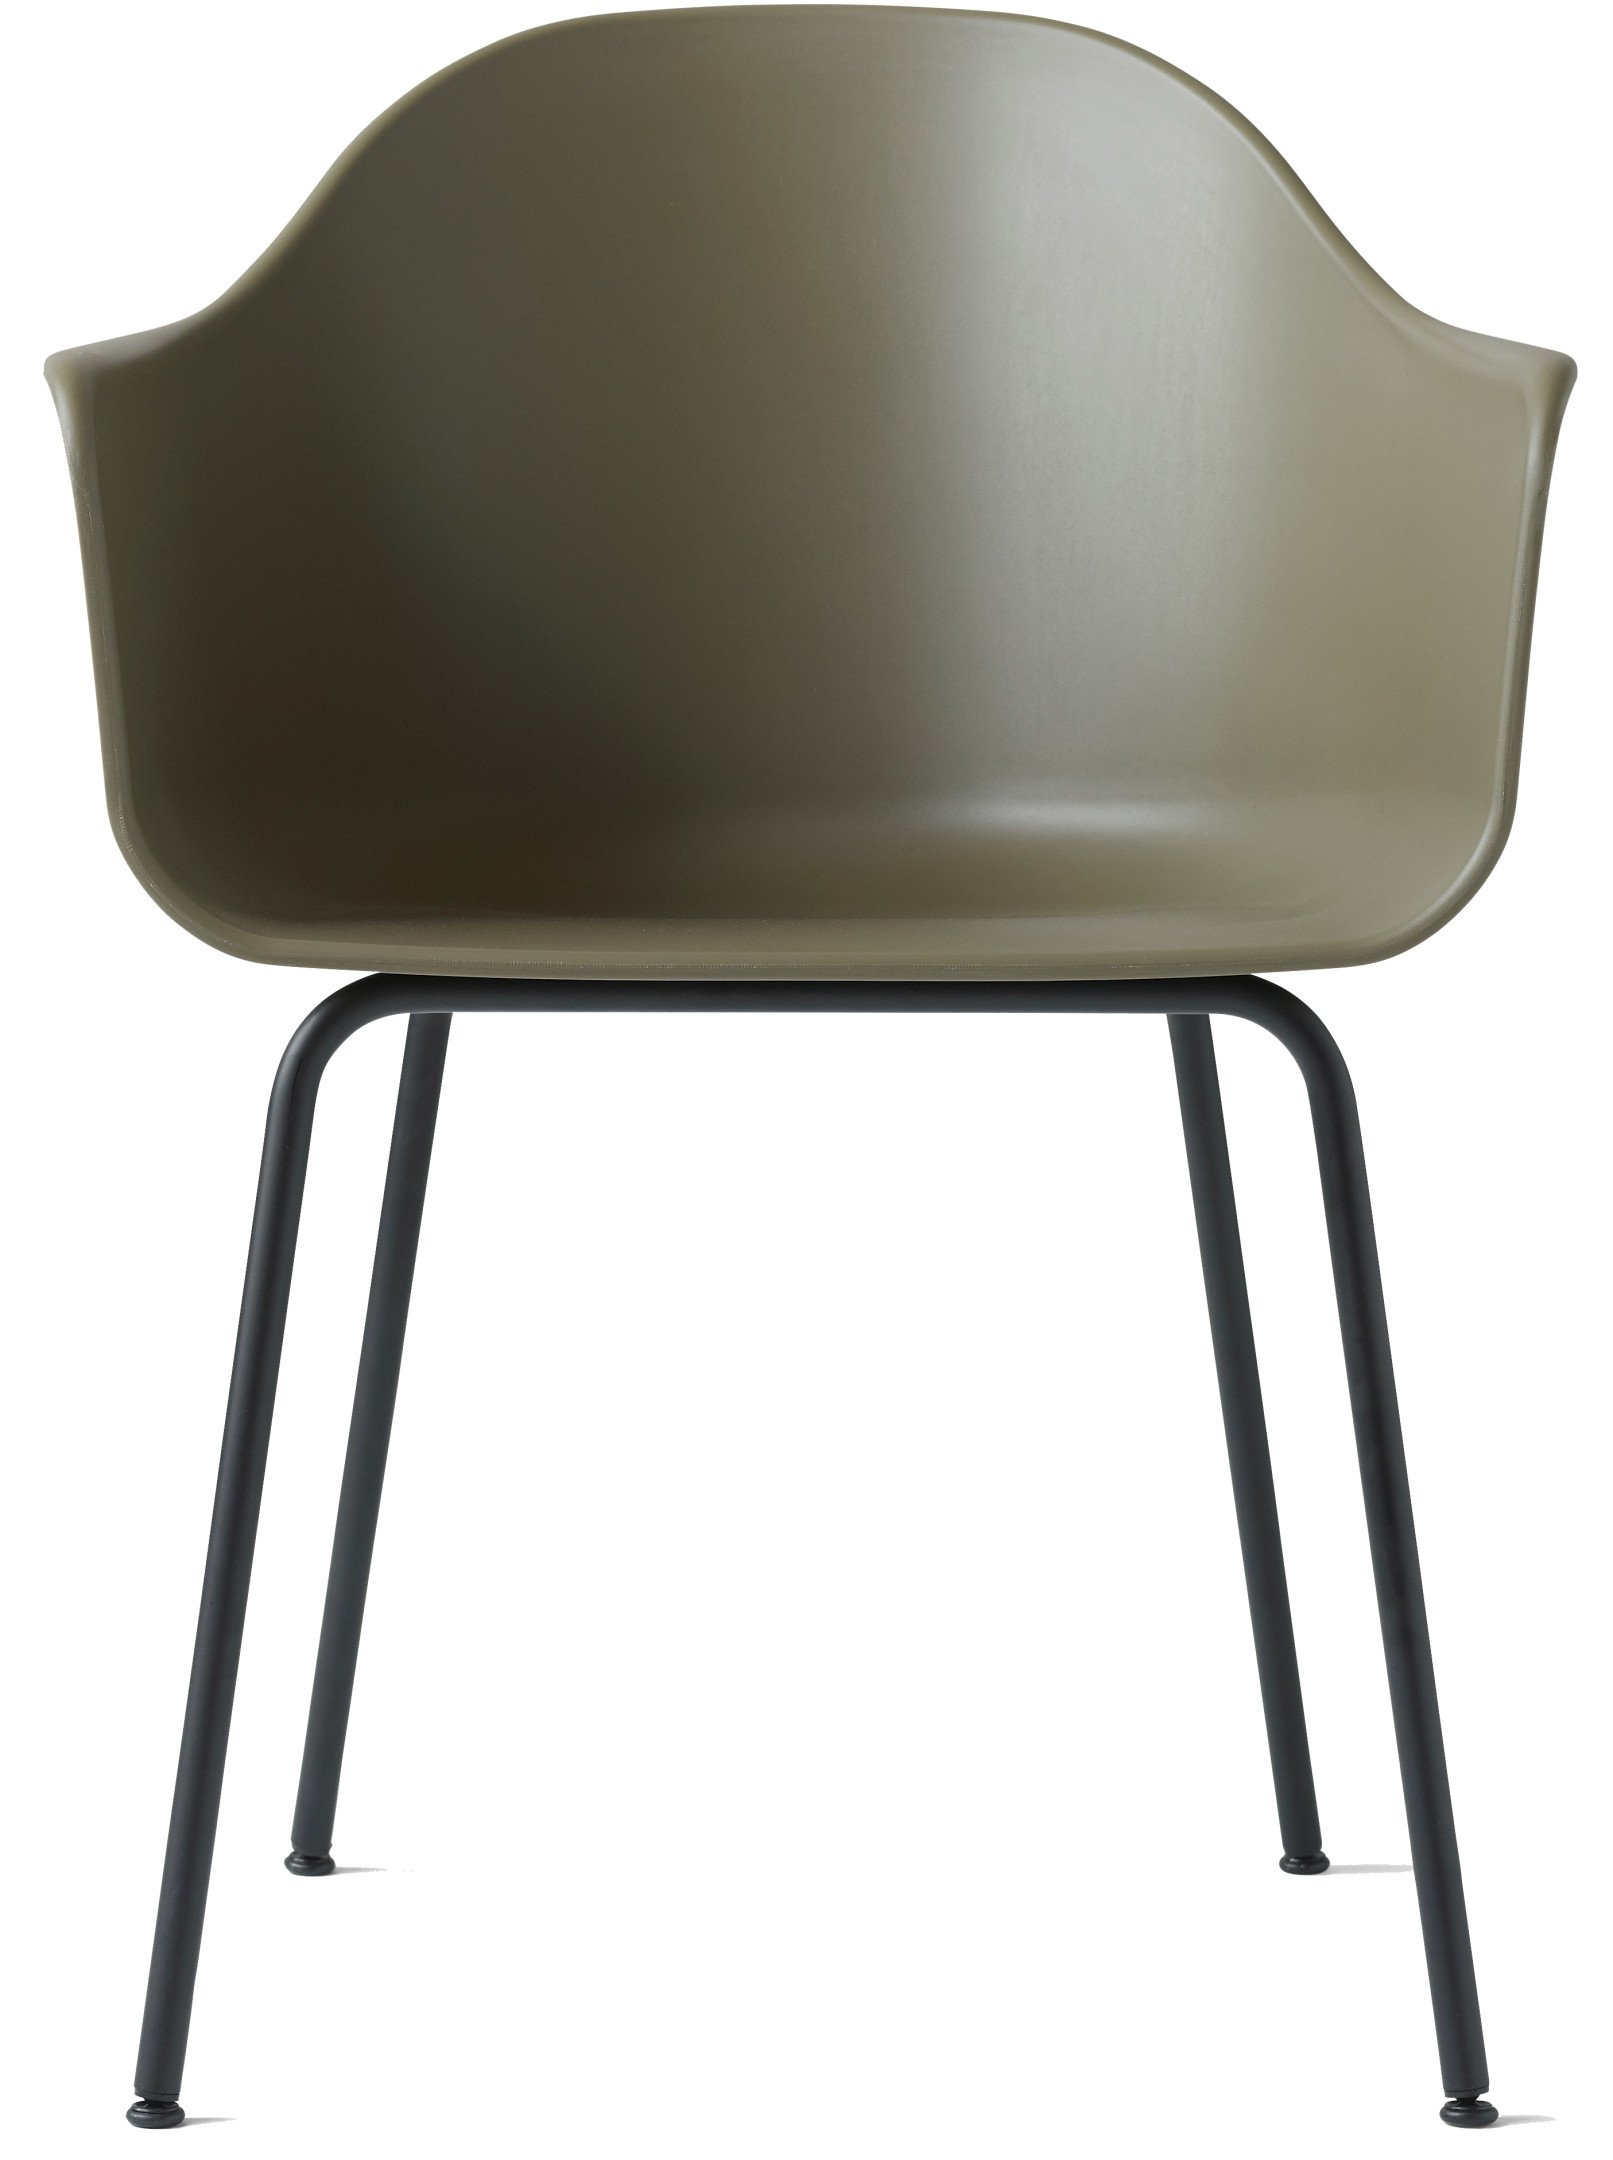 Harbour Chair Olive/Black Steel by Norm Architects for Menu